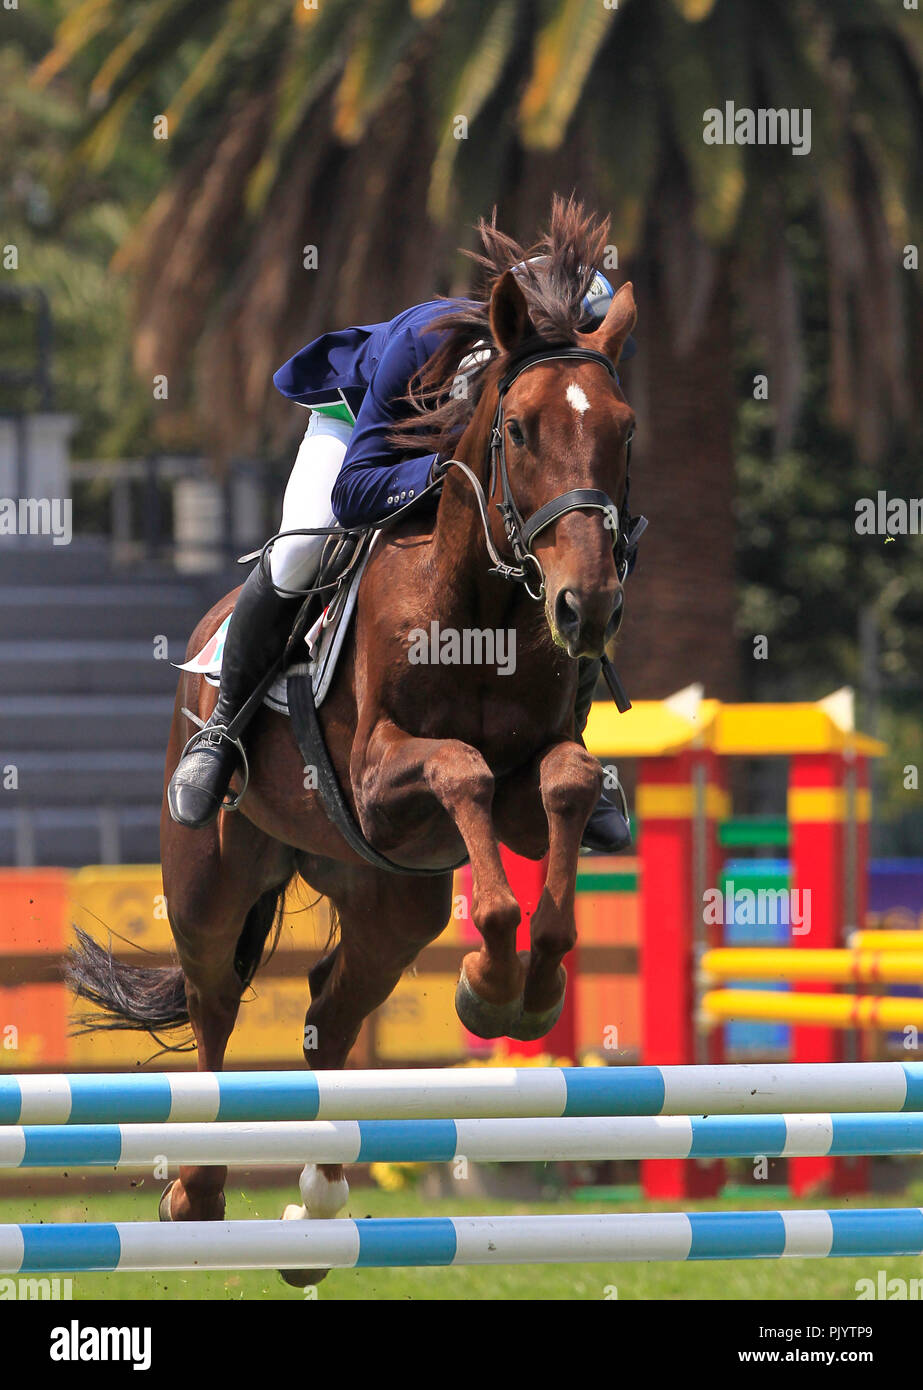 The Guatemalan Charles Fernandez competes in the mixed relay equestrian jump event held in the framework of the Modern Pentathlon World Championship in Mexico City, Mexico, 09 September 2018. EFE/Mario Guzman - Stock Image